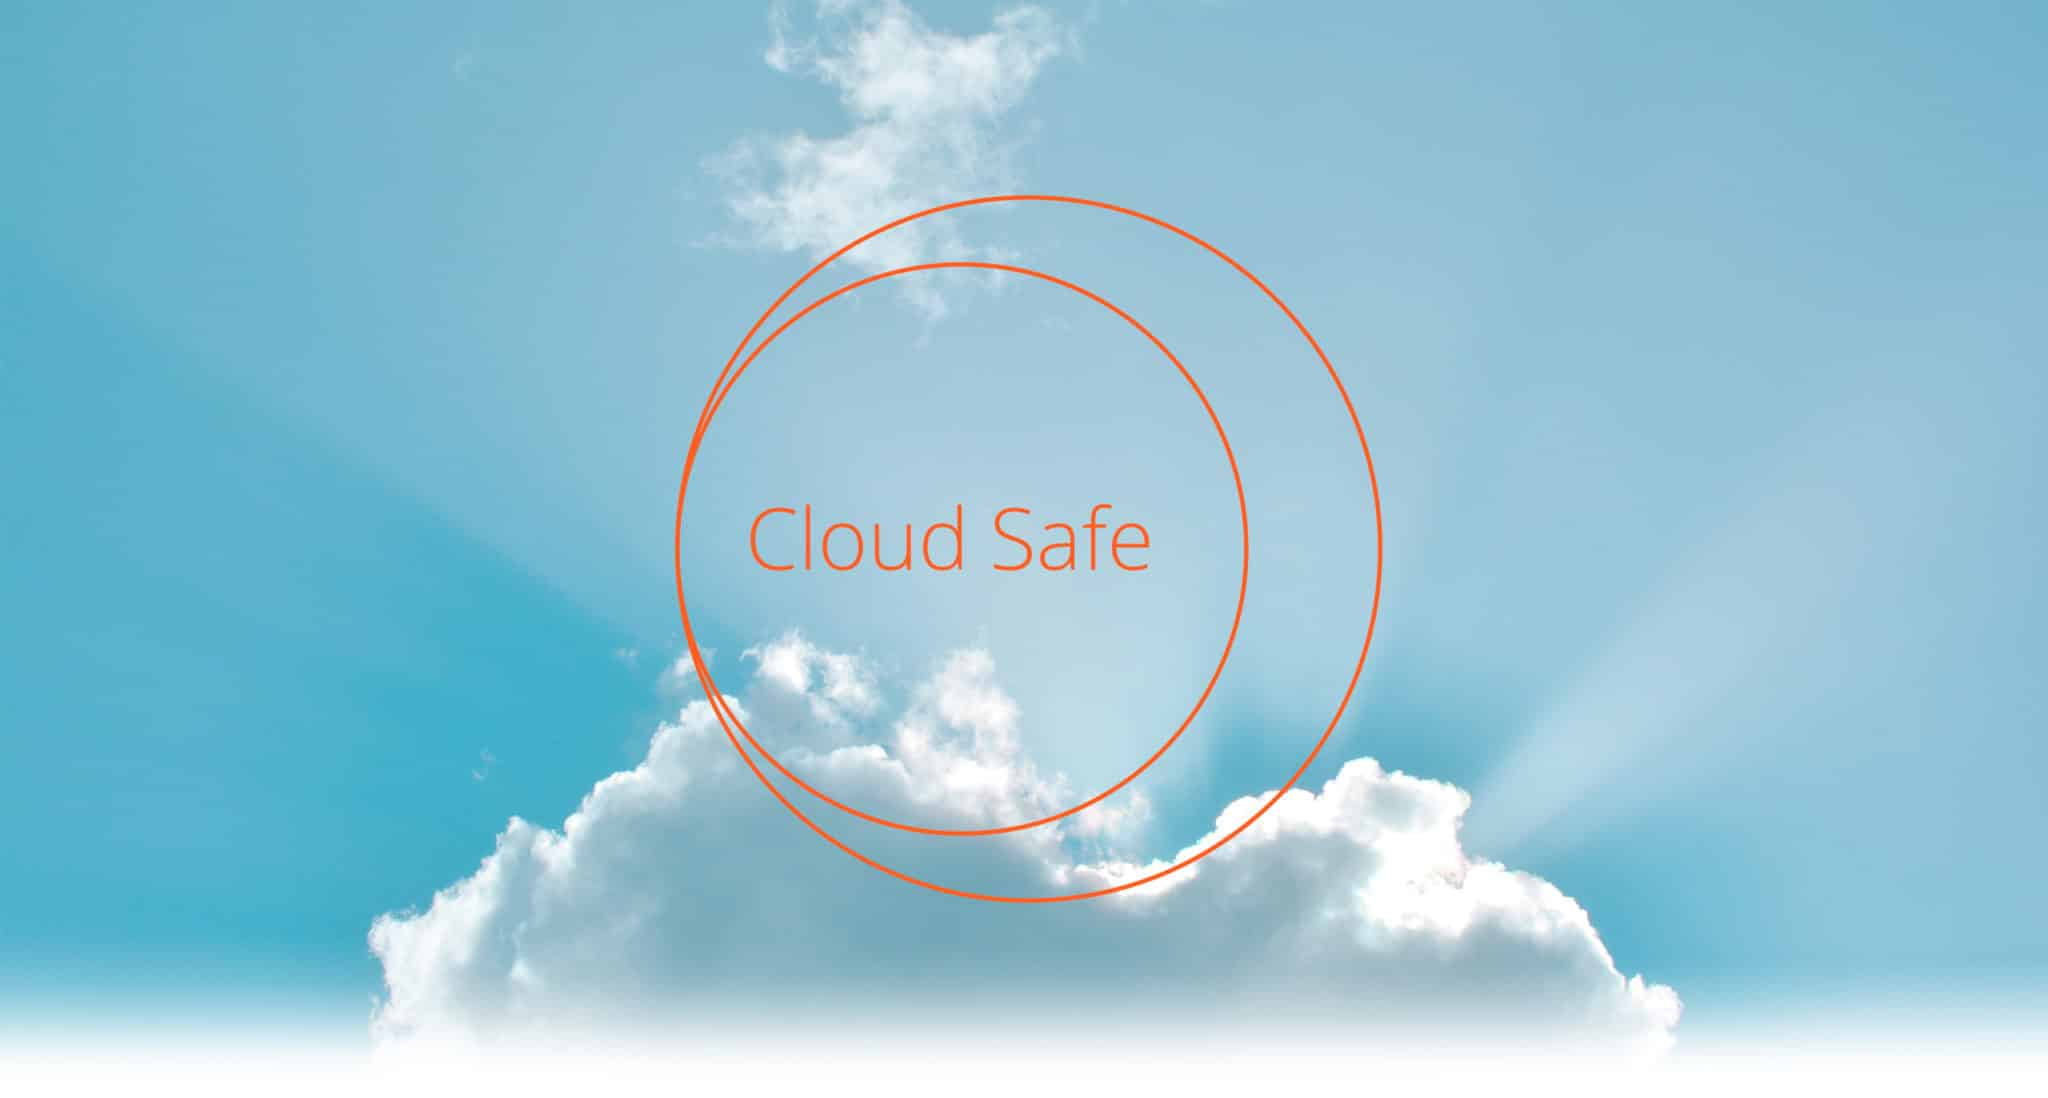 Cloud Safe